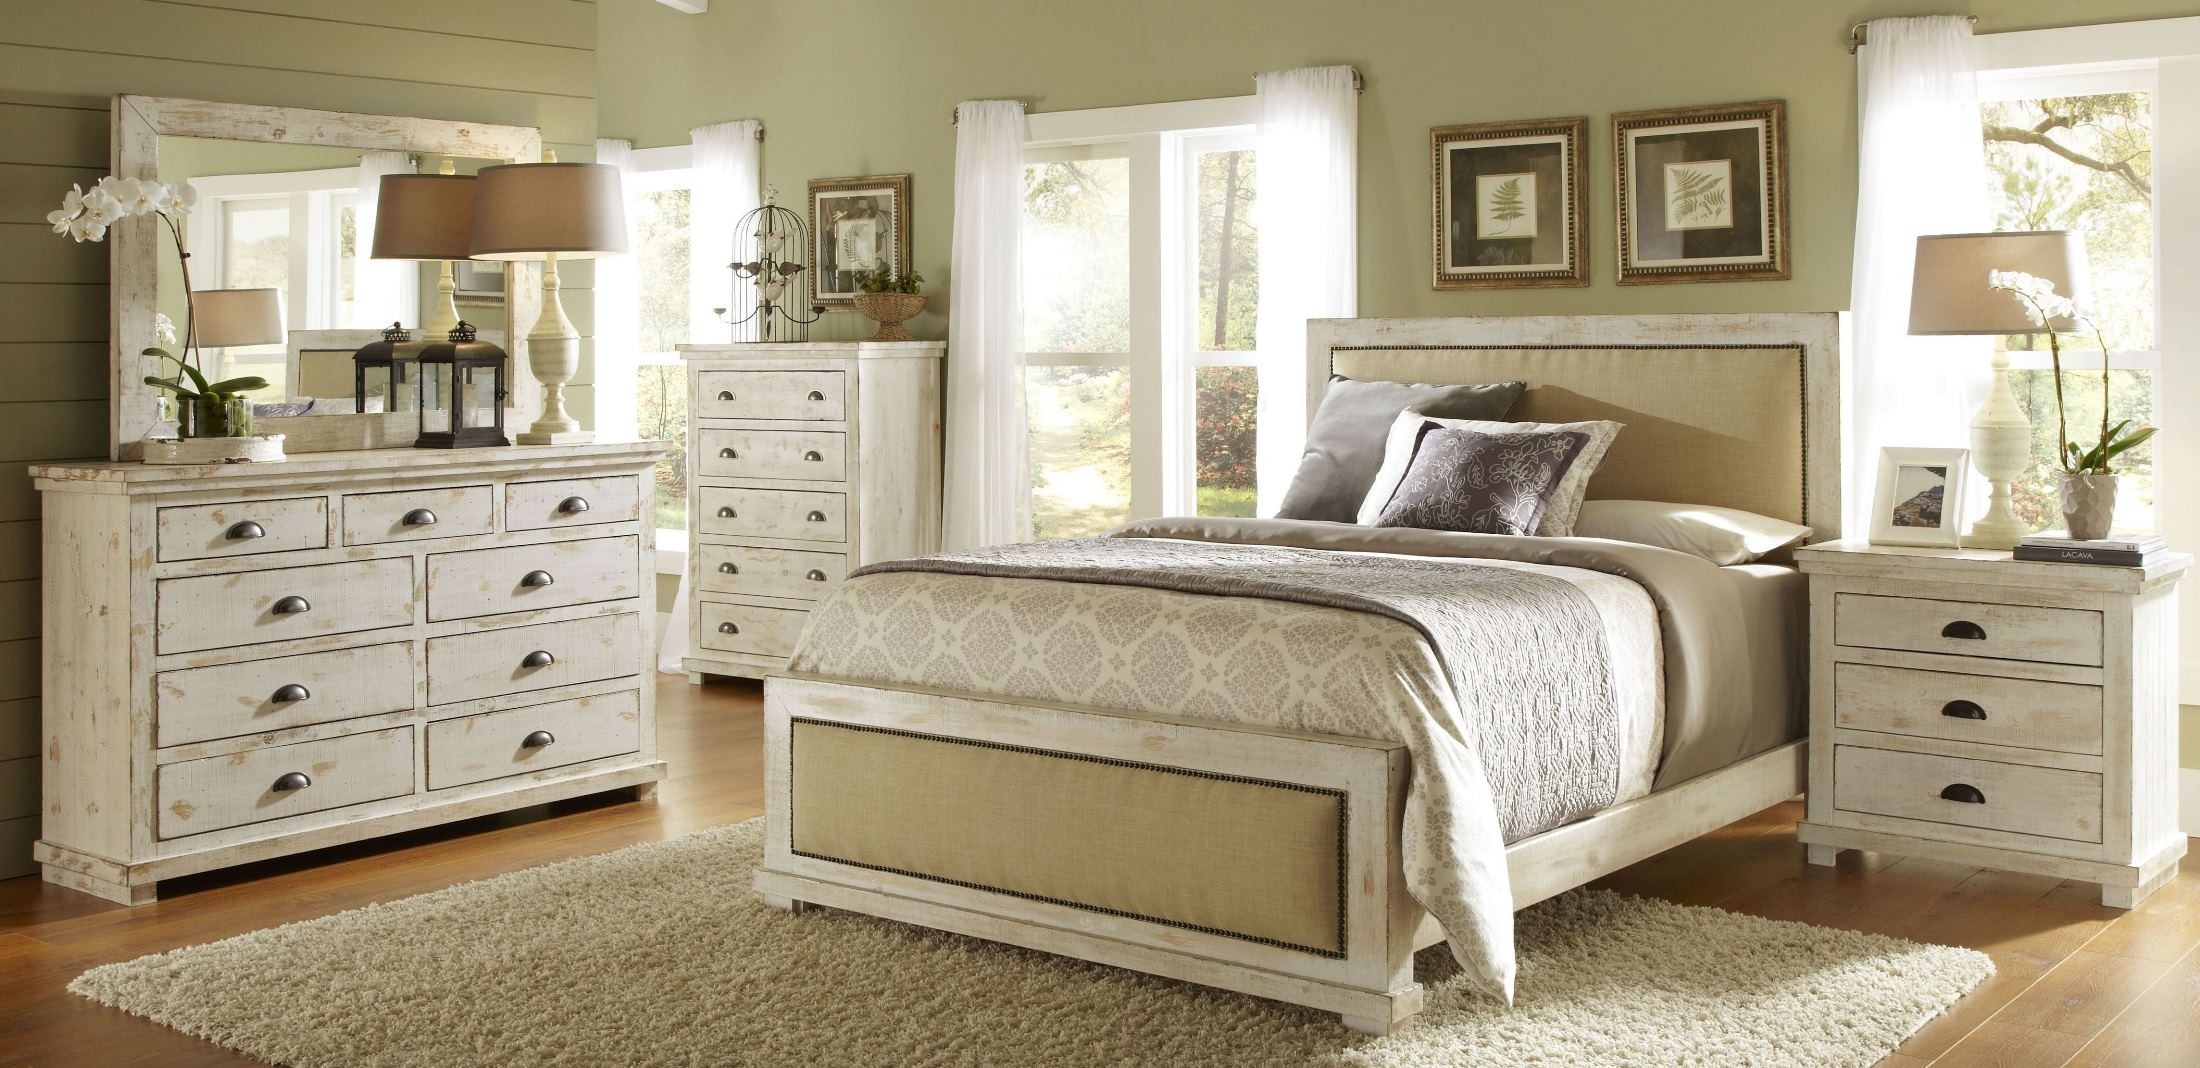 Willow distressed white upholstered bedroom set p610 34 for Affordable furniture 610